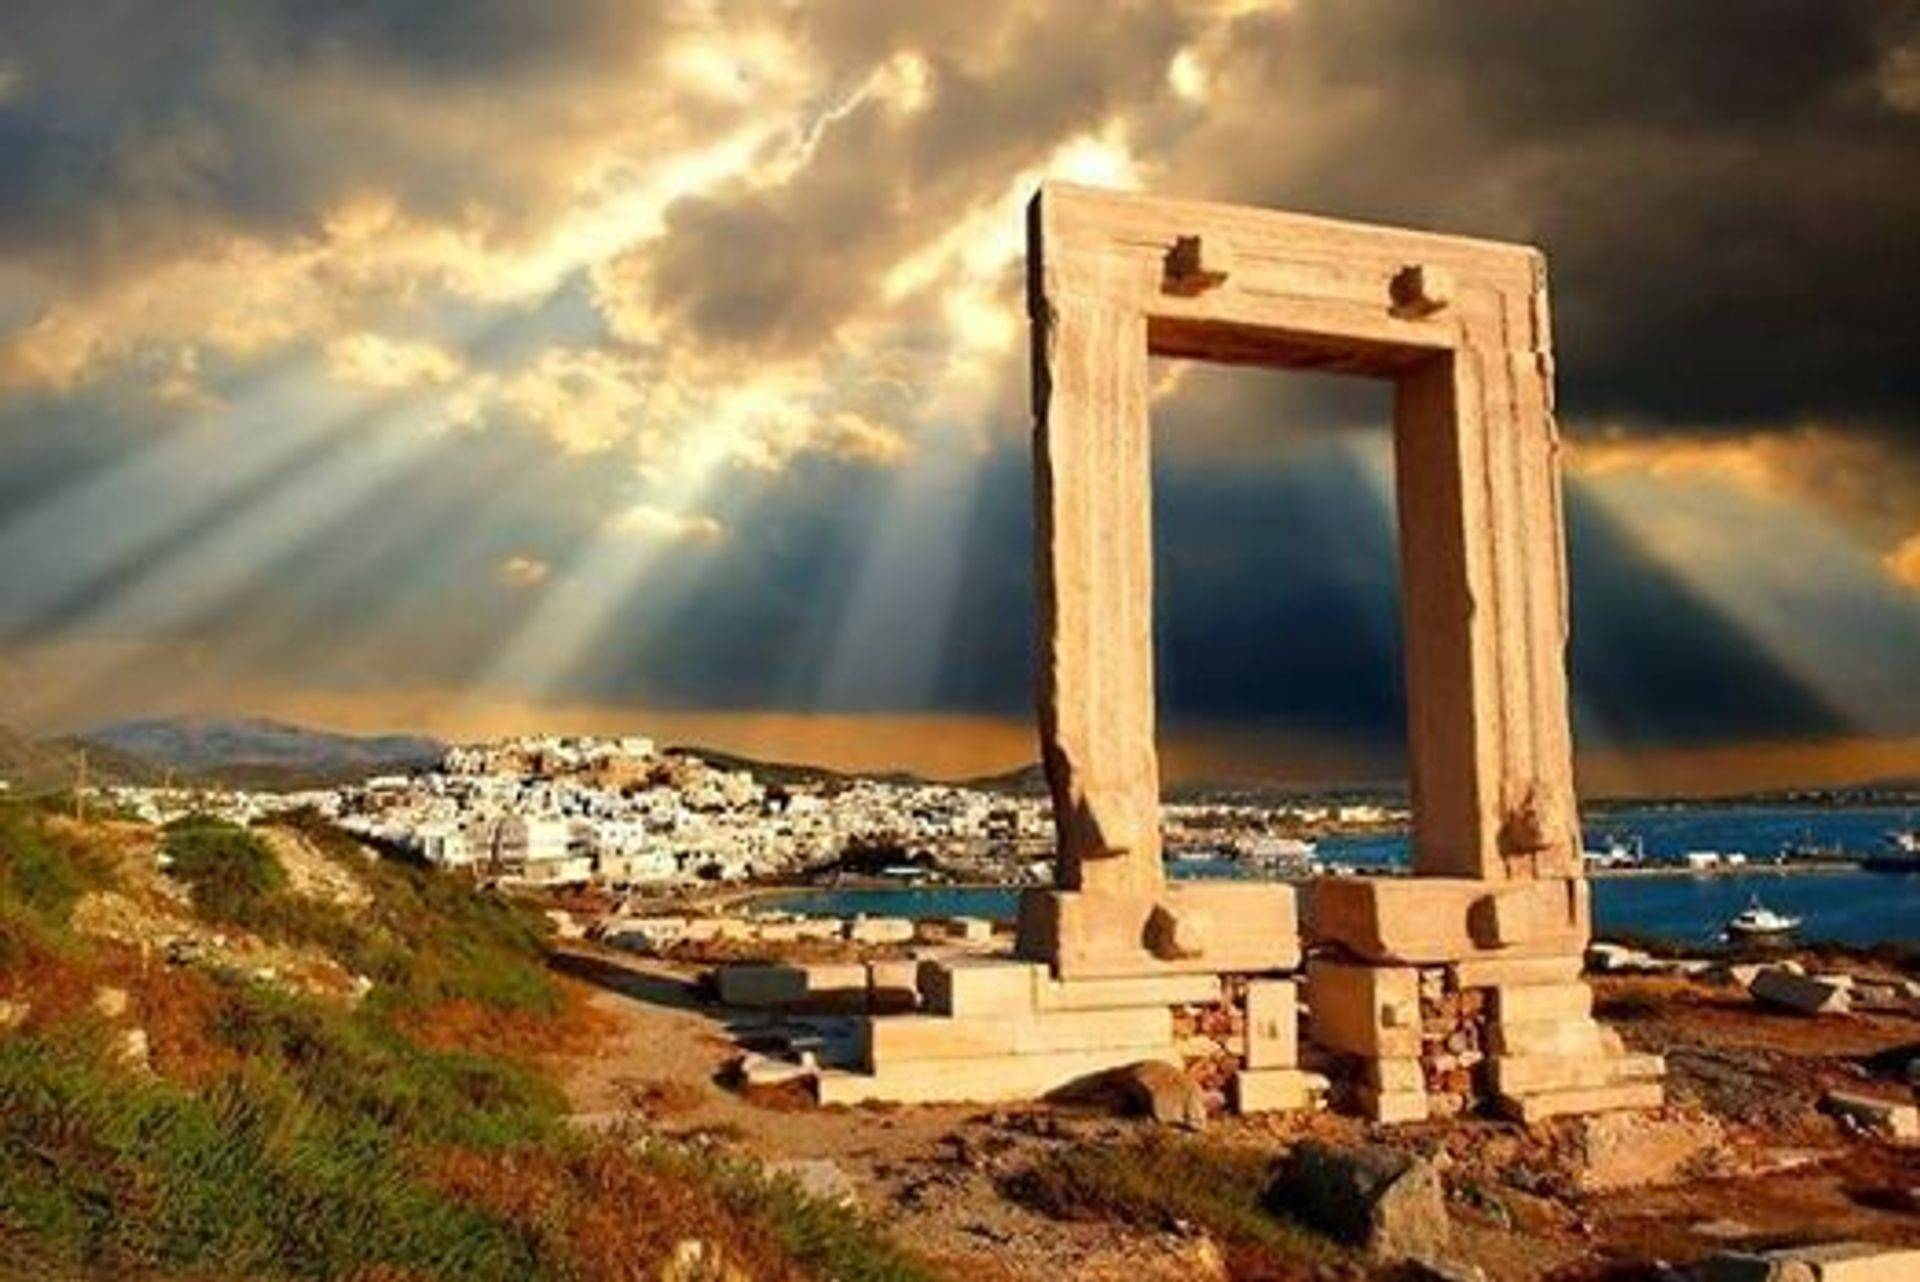 Naxos, Apollo Temple, the iris of the owrld